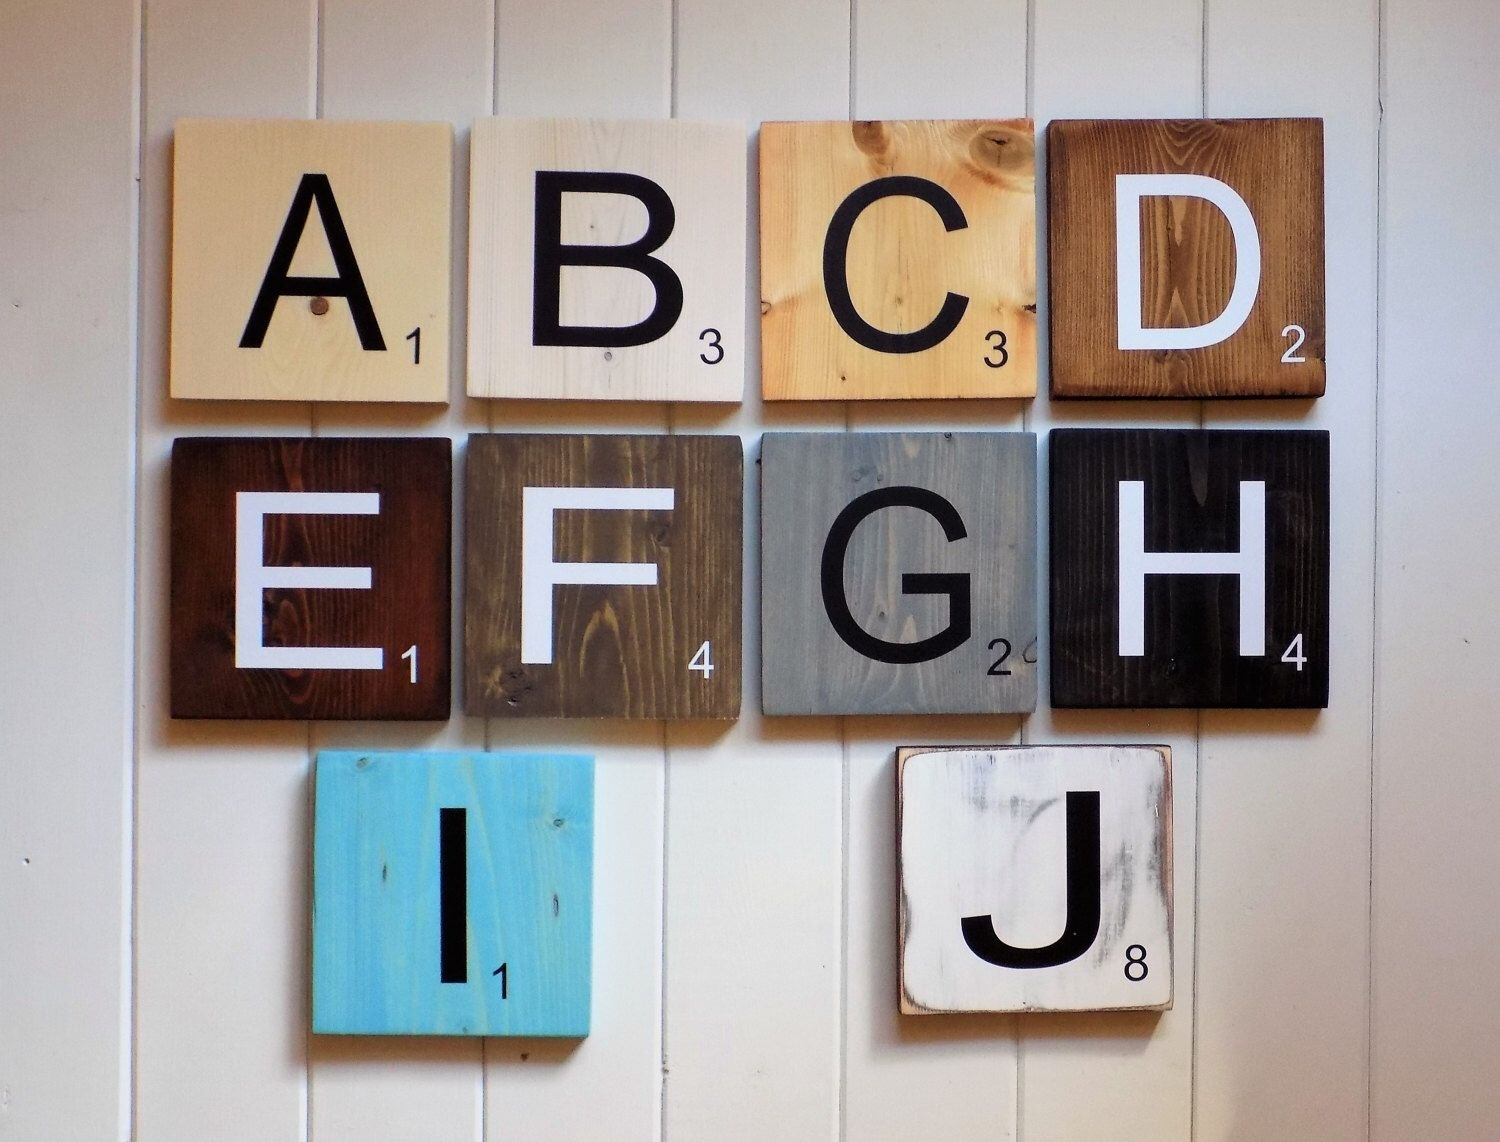 Large Scrabble Tiles, Scrabble Tiles, Scrabble Wall Art, Gallery Throughout Scrabble Wall Art (View 11 of 20)